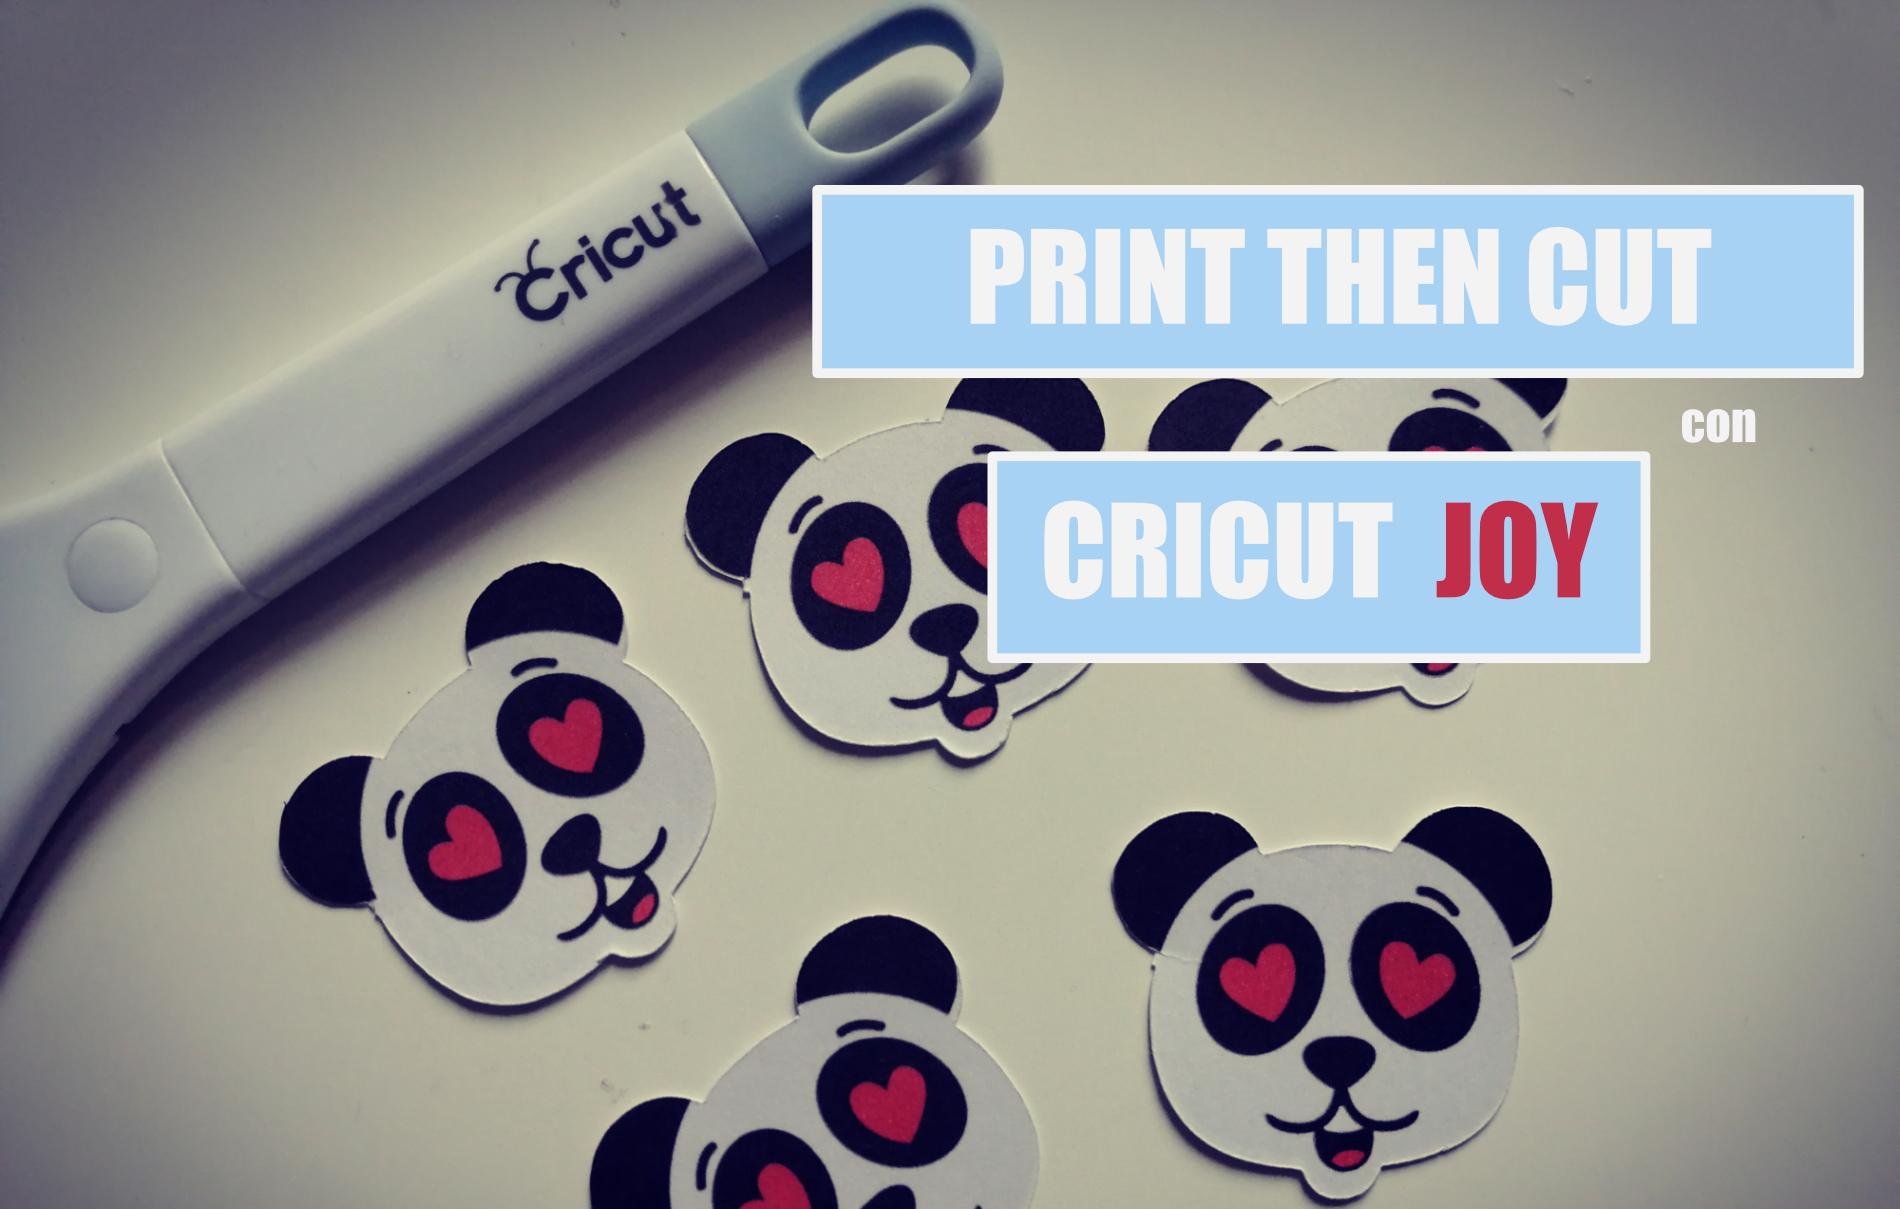 print then cut stampa e taglia Cricut Joy